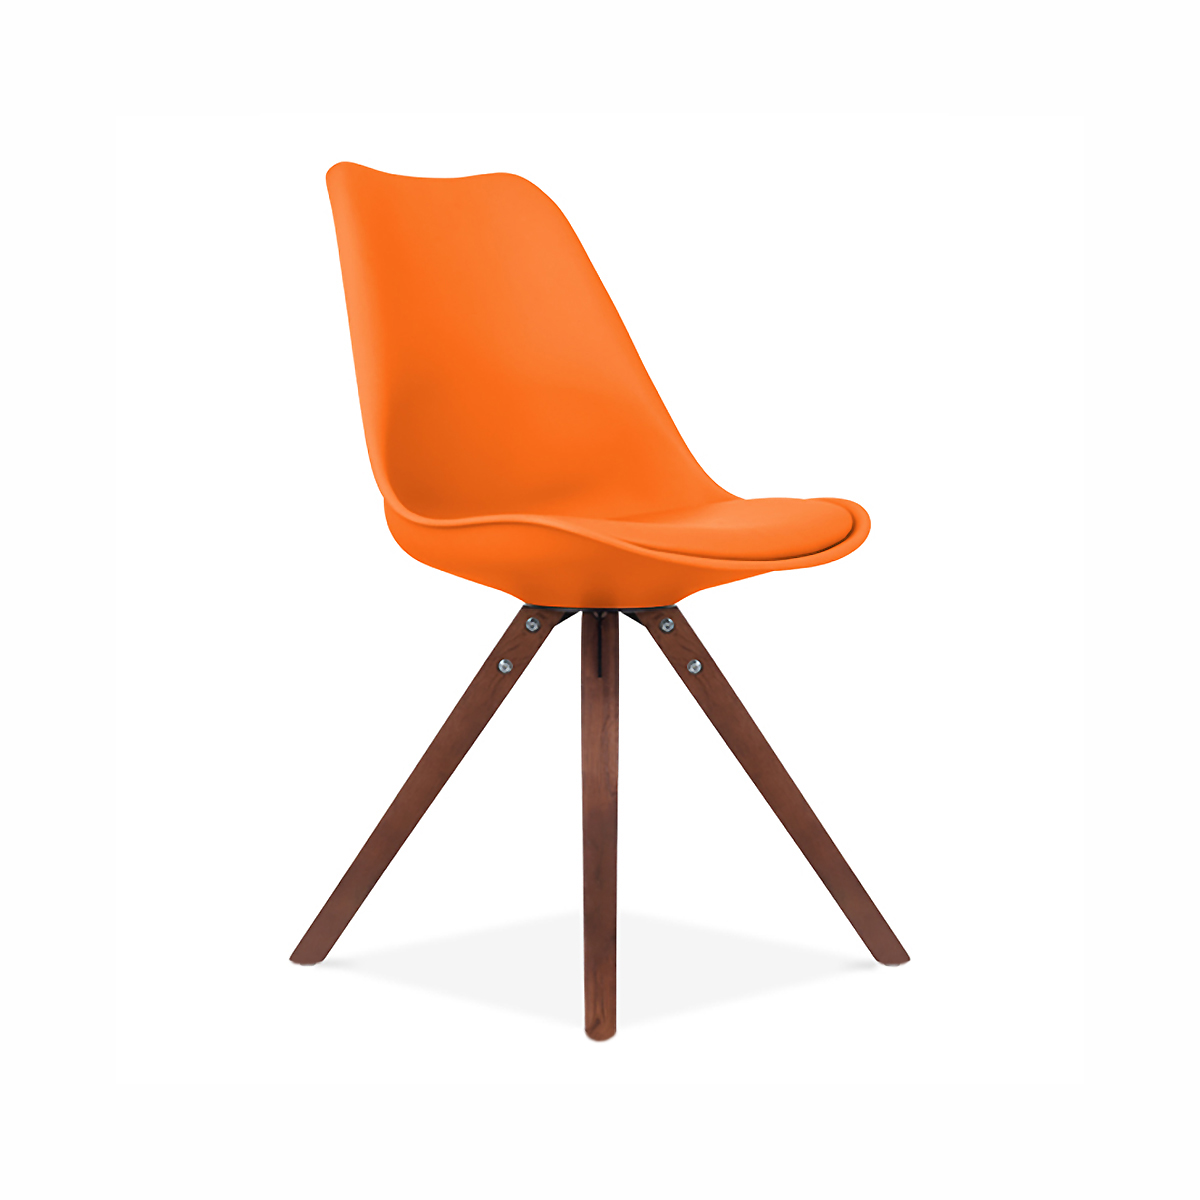 Viborg mid century orange side chair with walnut wood base Mid century chairs